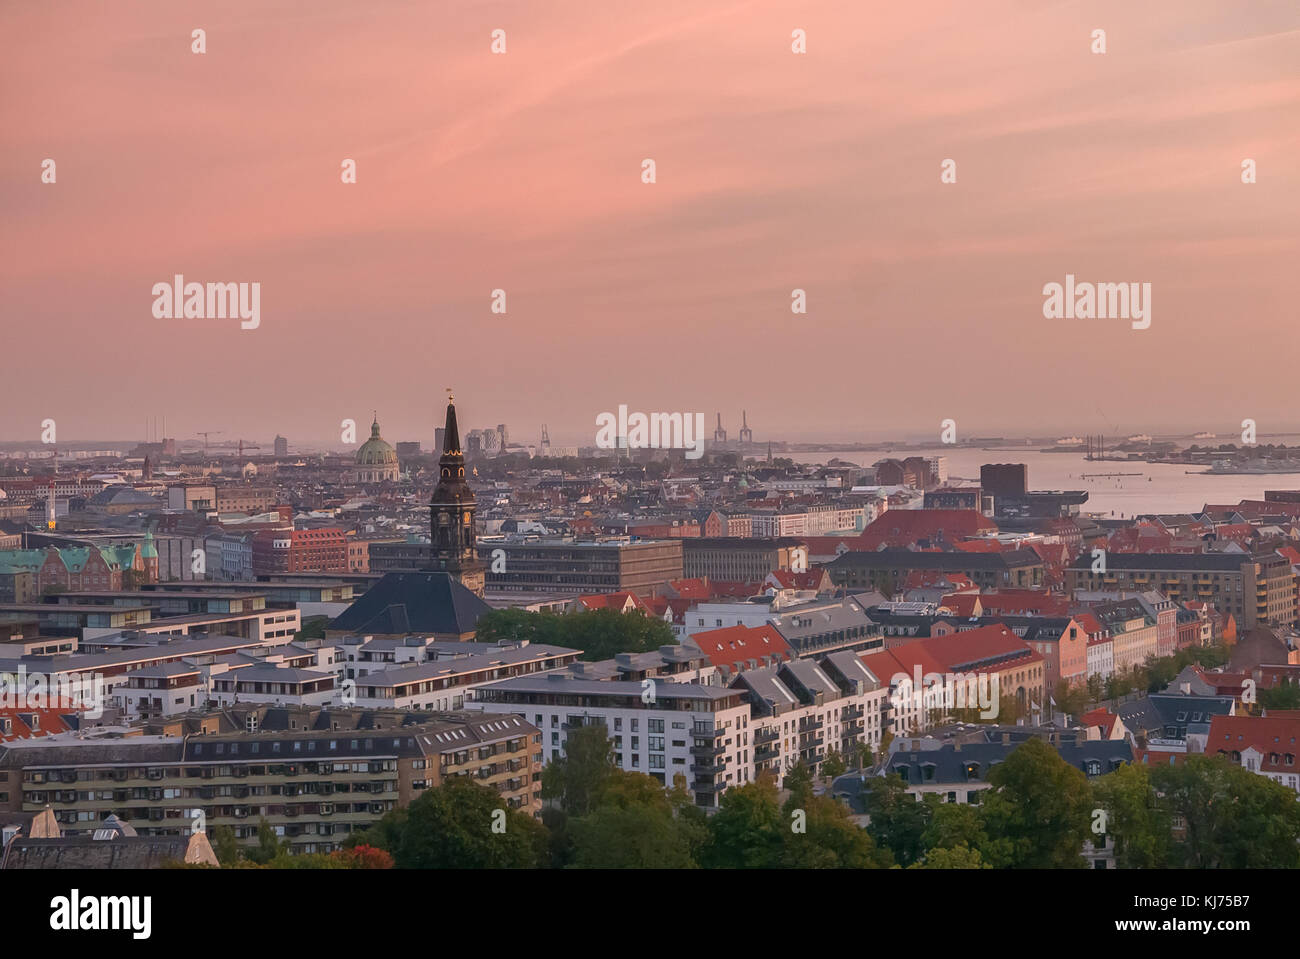 Copenhagen skyline with industrial harbor area at sunrise - Stock Image